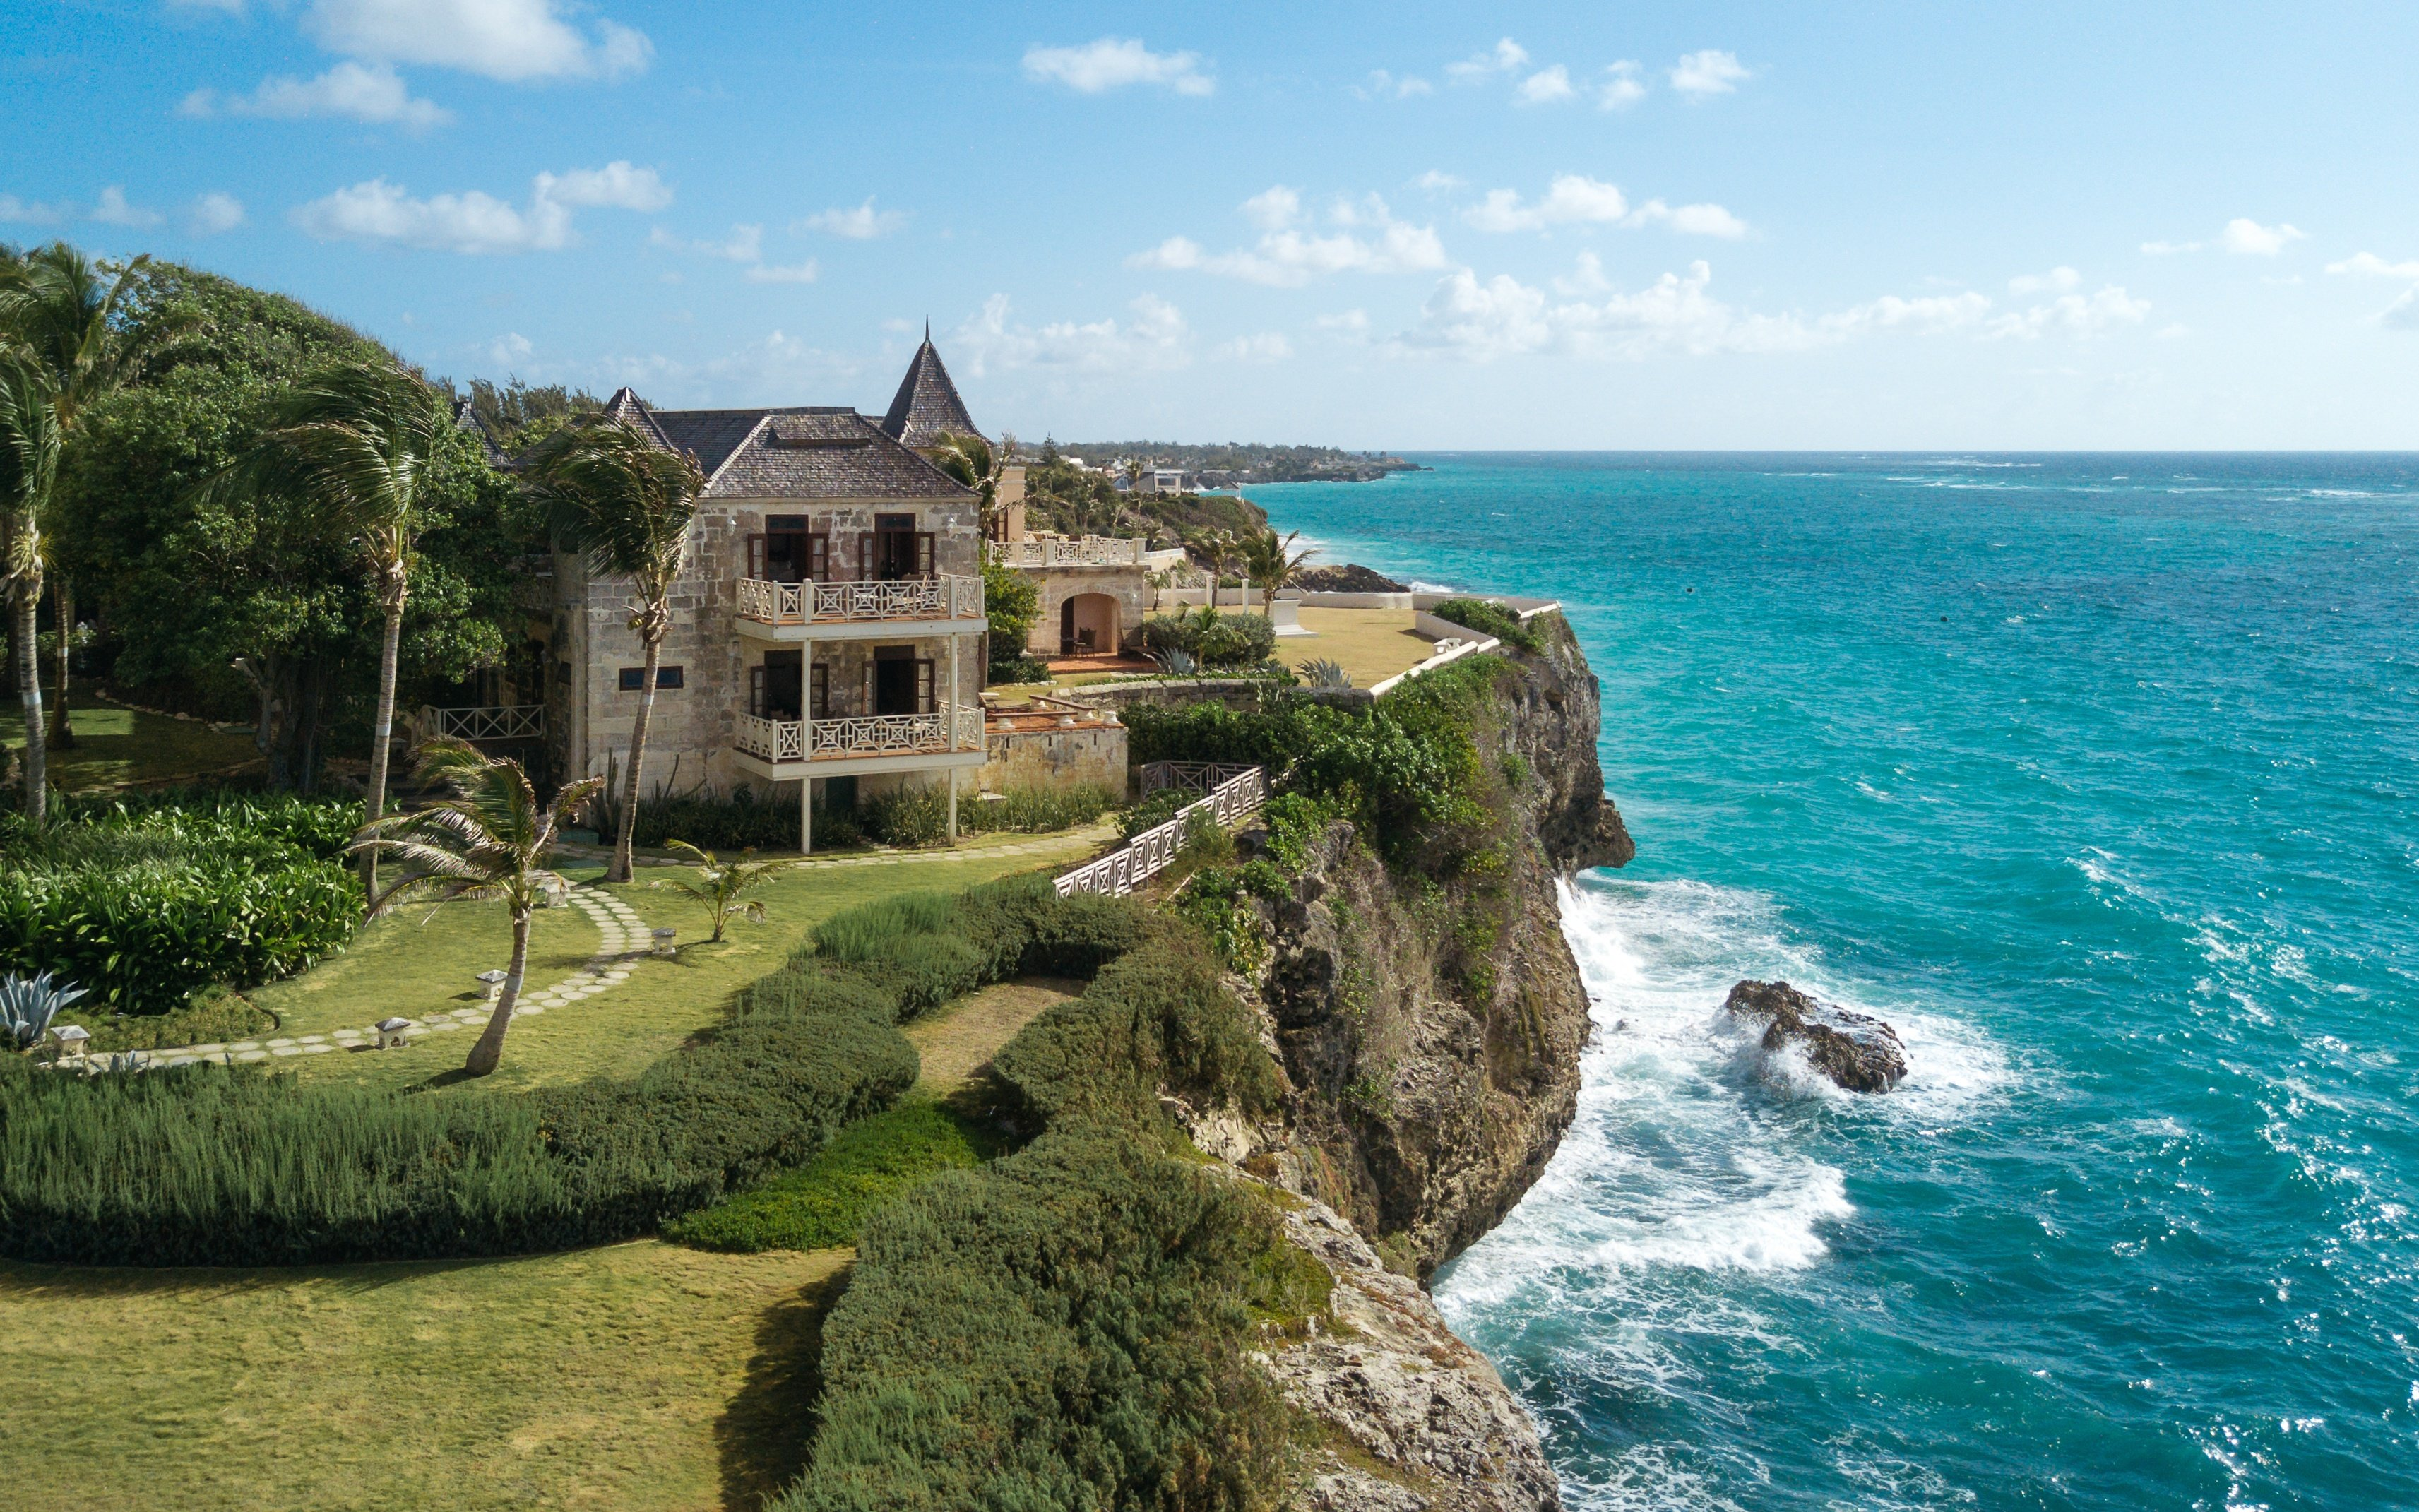 10 Things You May Not Know About Barbados